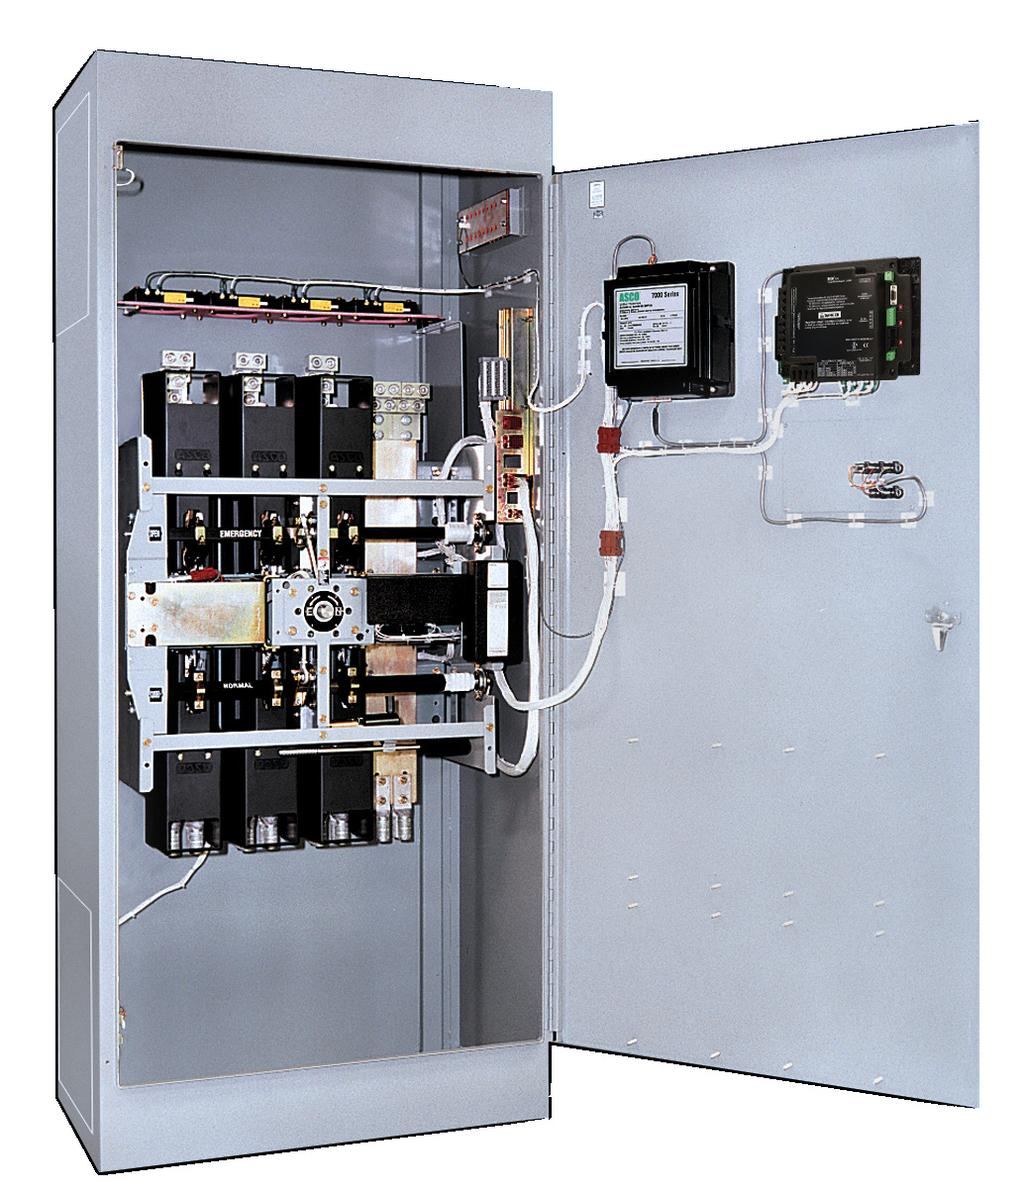 Asco 7000 Series Power Transfer Switch Pdf Lighting Contactor Wiring Diagram Emersonasco 918 As Society Becomes Increasingly Dependent On The Quality And Reliability Of Electrical Interruption Or